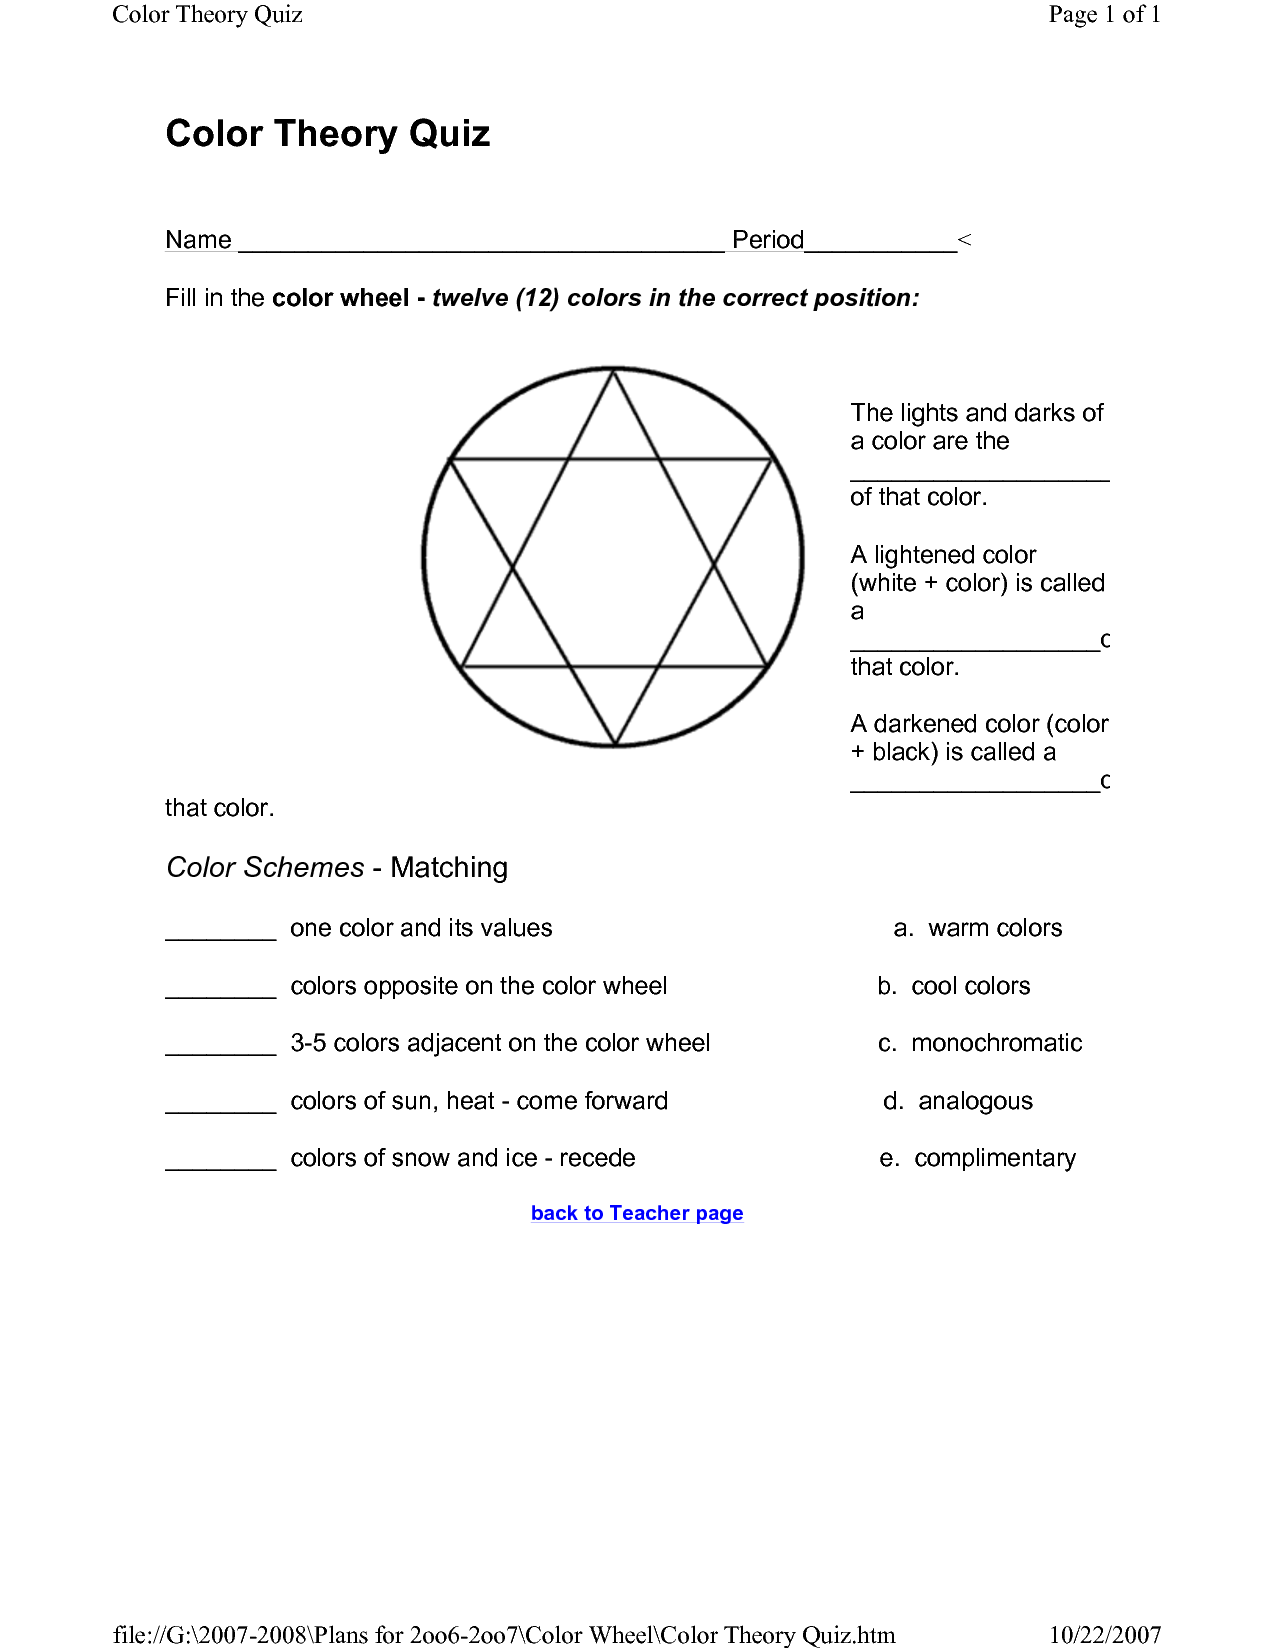 Colour Theory Worksheet Color Theory Quiz Page Of Color Theory Quiz Name Color Theory Color Theory Worksheet Color Quiz [ 1650 x 1275 Pixel ]